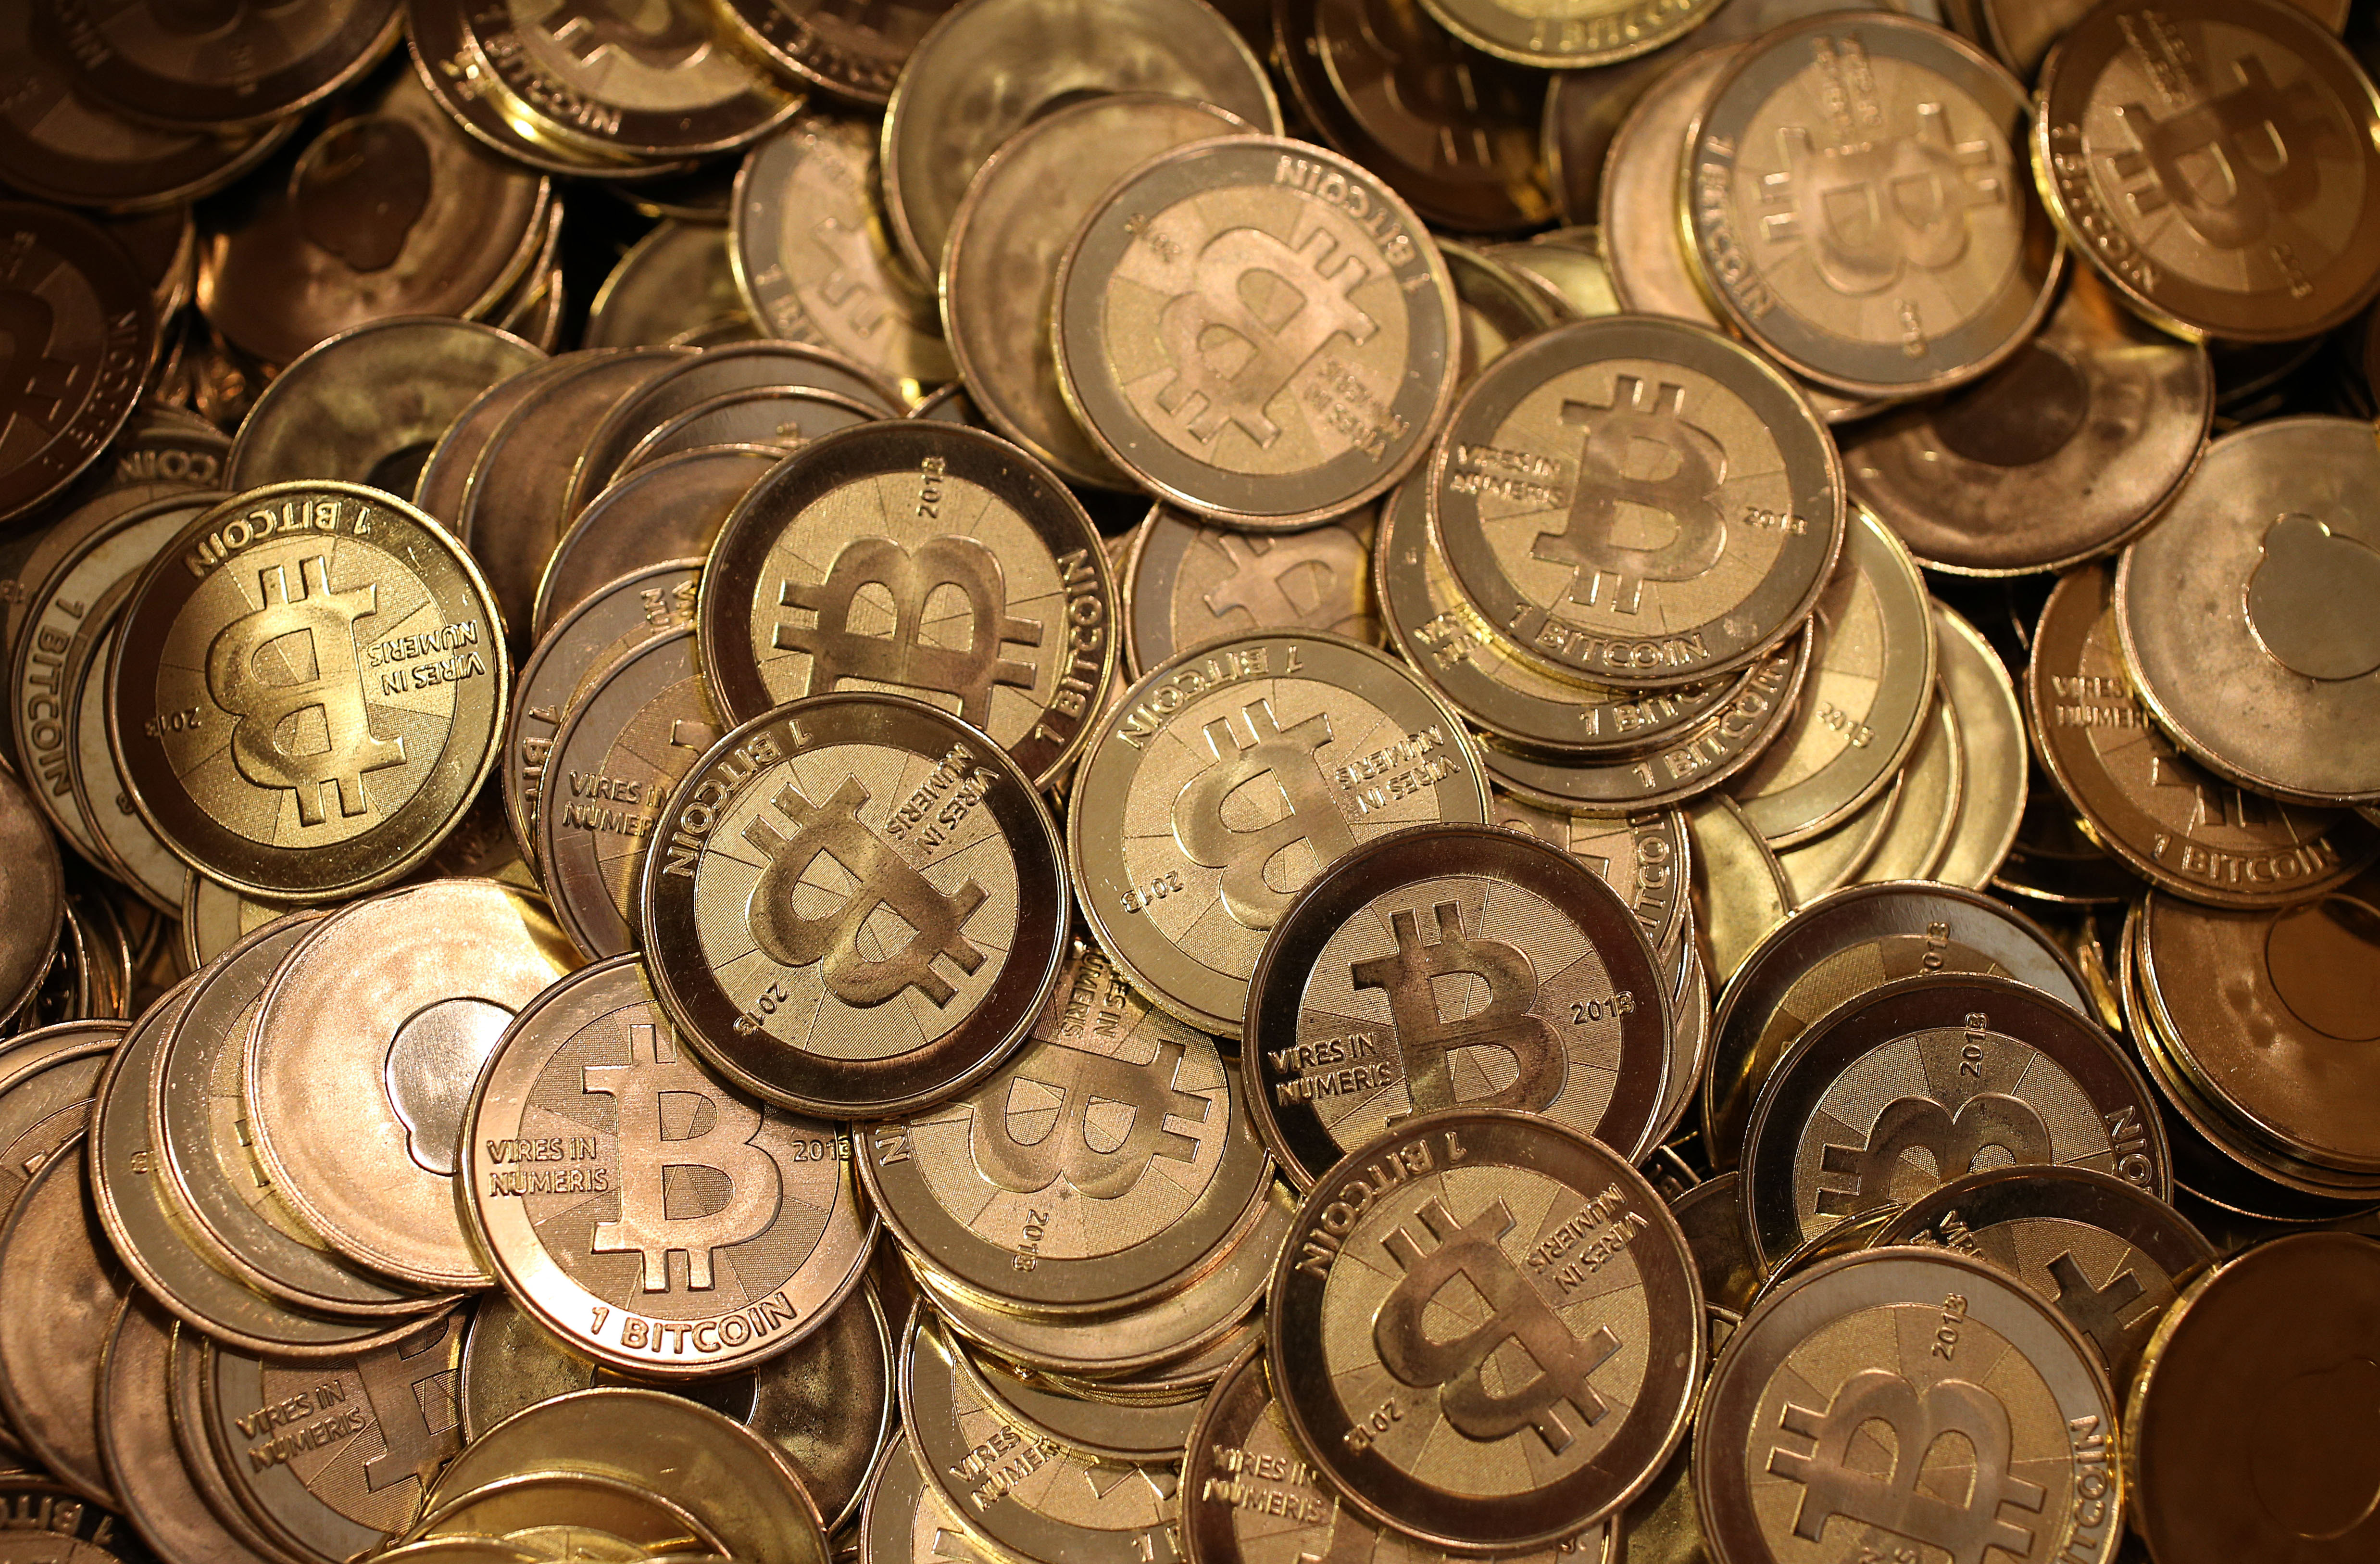 Described by advocates as a digital or virtual currency, bitcoin is a medium of exchange that, unlike the dollar, is completely decentralized. There is no central bank or middle man, so two parties can do business directly. (Getty Images)